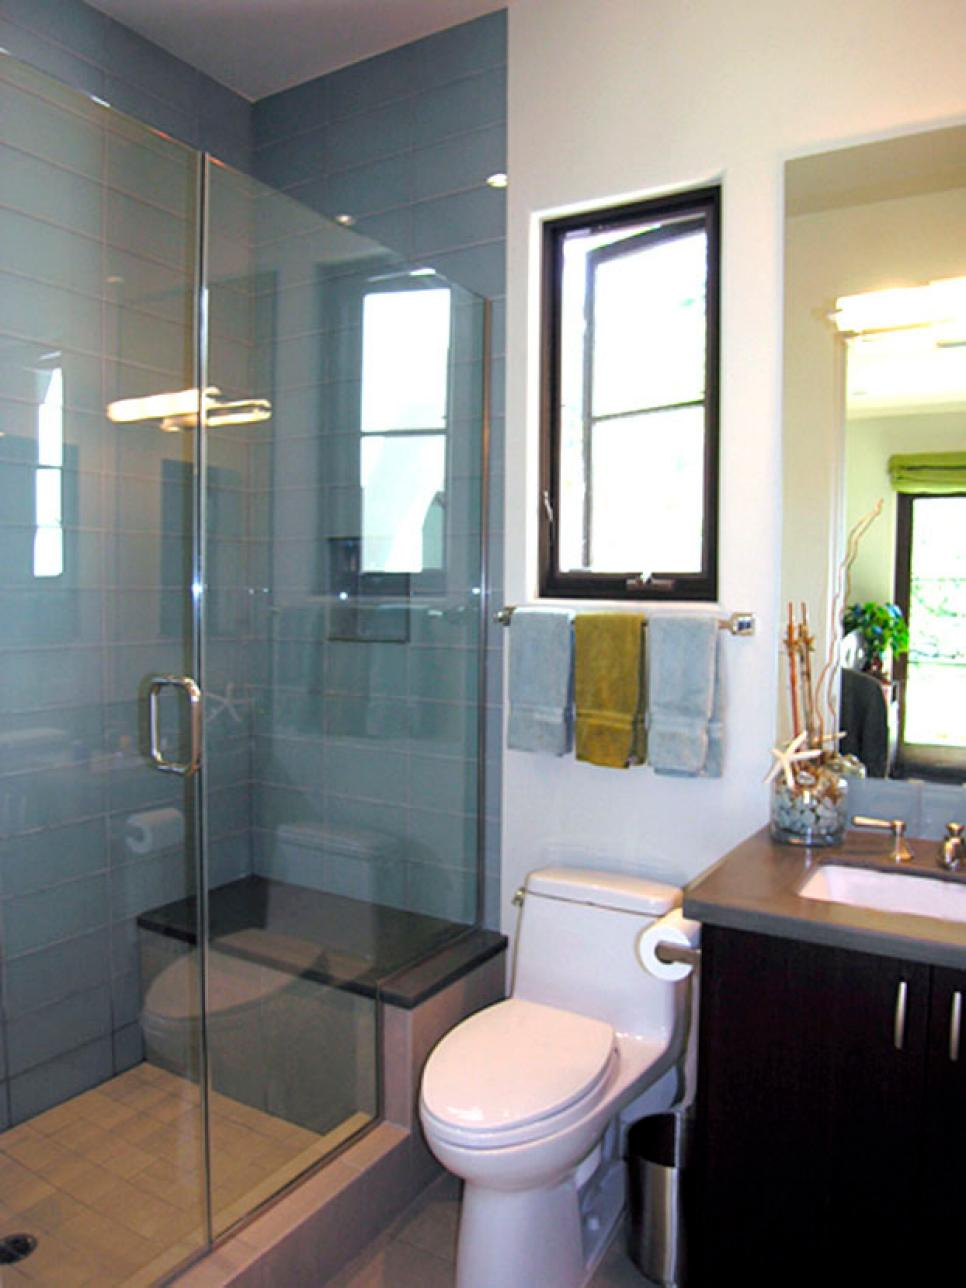 Three quarter bathrooms hgtv for Hgtv small bathroom design ideas